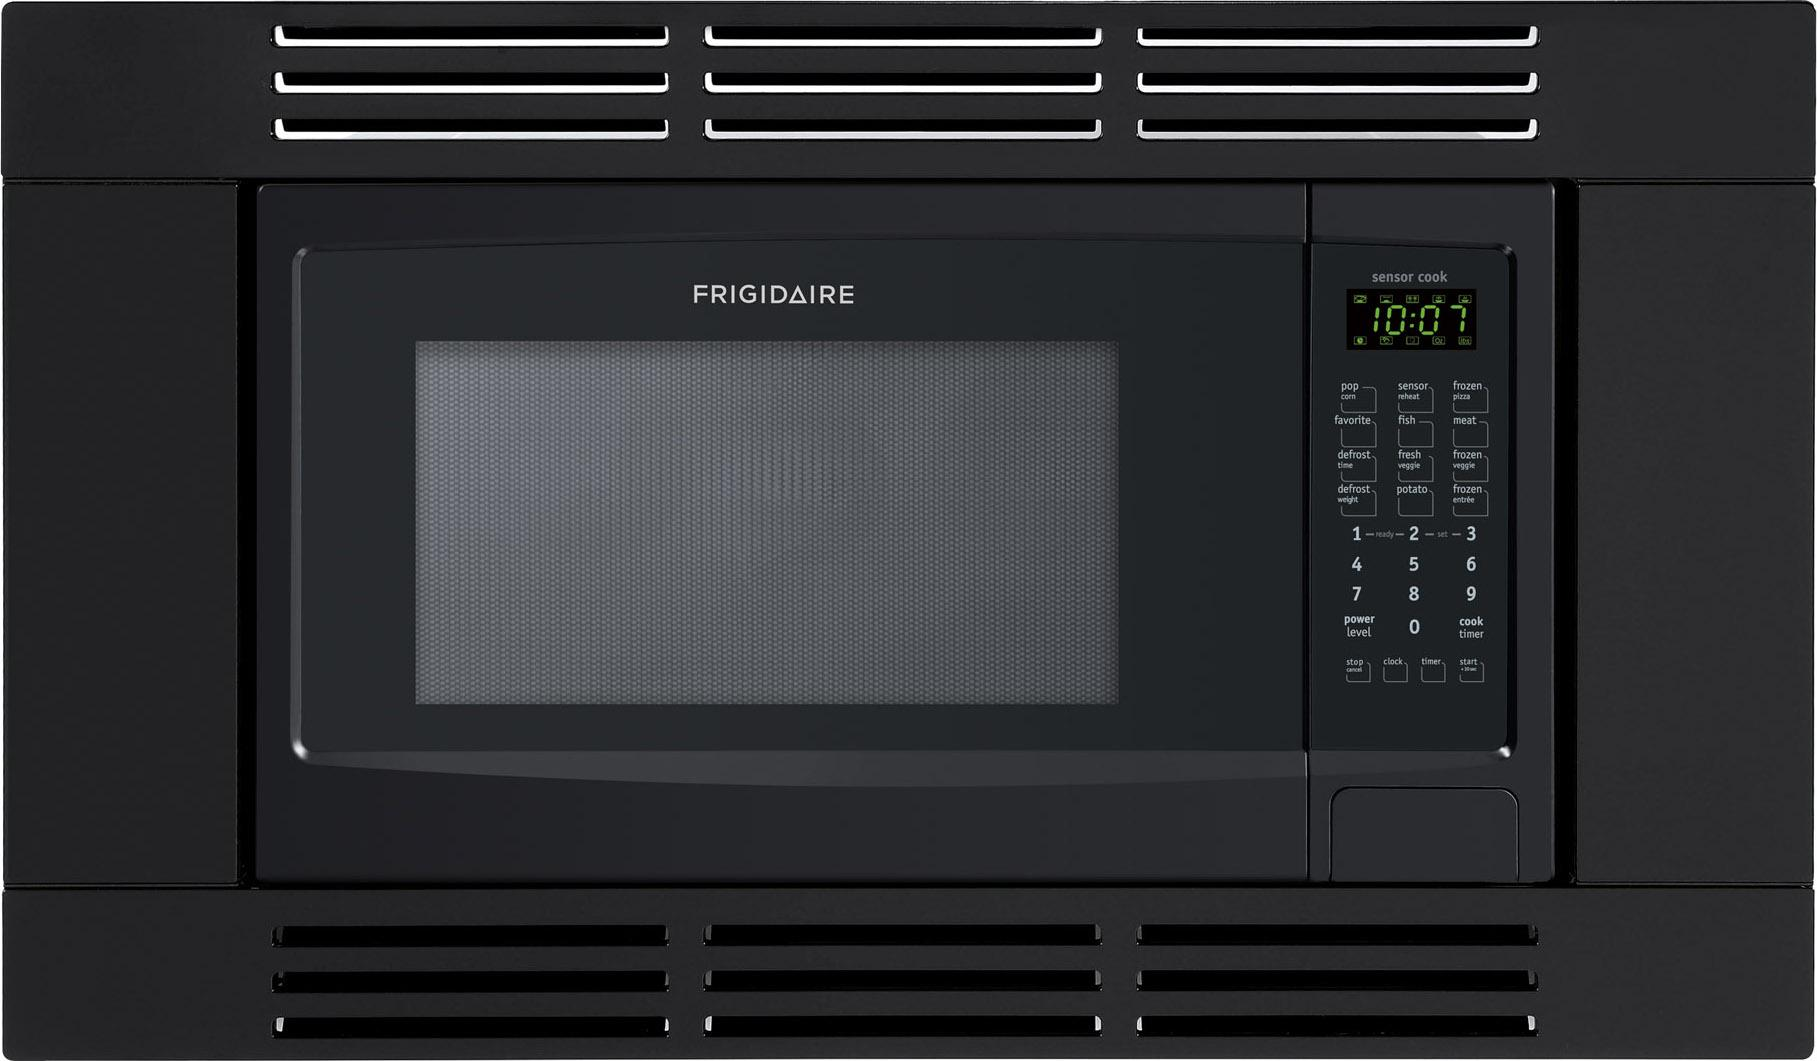 Frigidaire Microwaves 1.6 Cu. Ft. Built-In Microwave - Item Number: FFMO1611LB